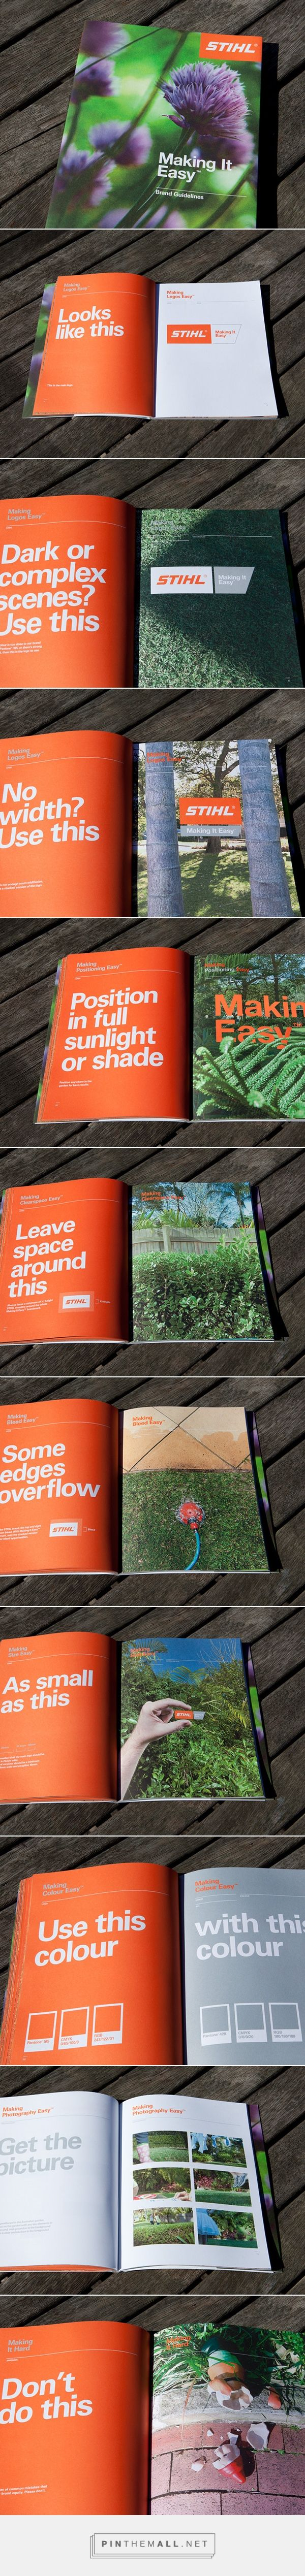 STIHL - Making It Easy Brand Guidelines on Behance - created via http://pinthemall.net